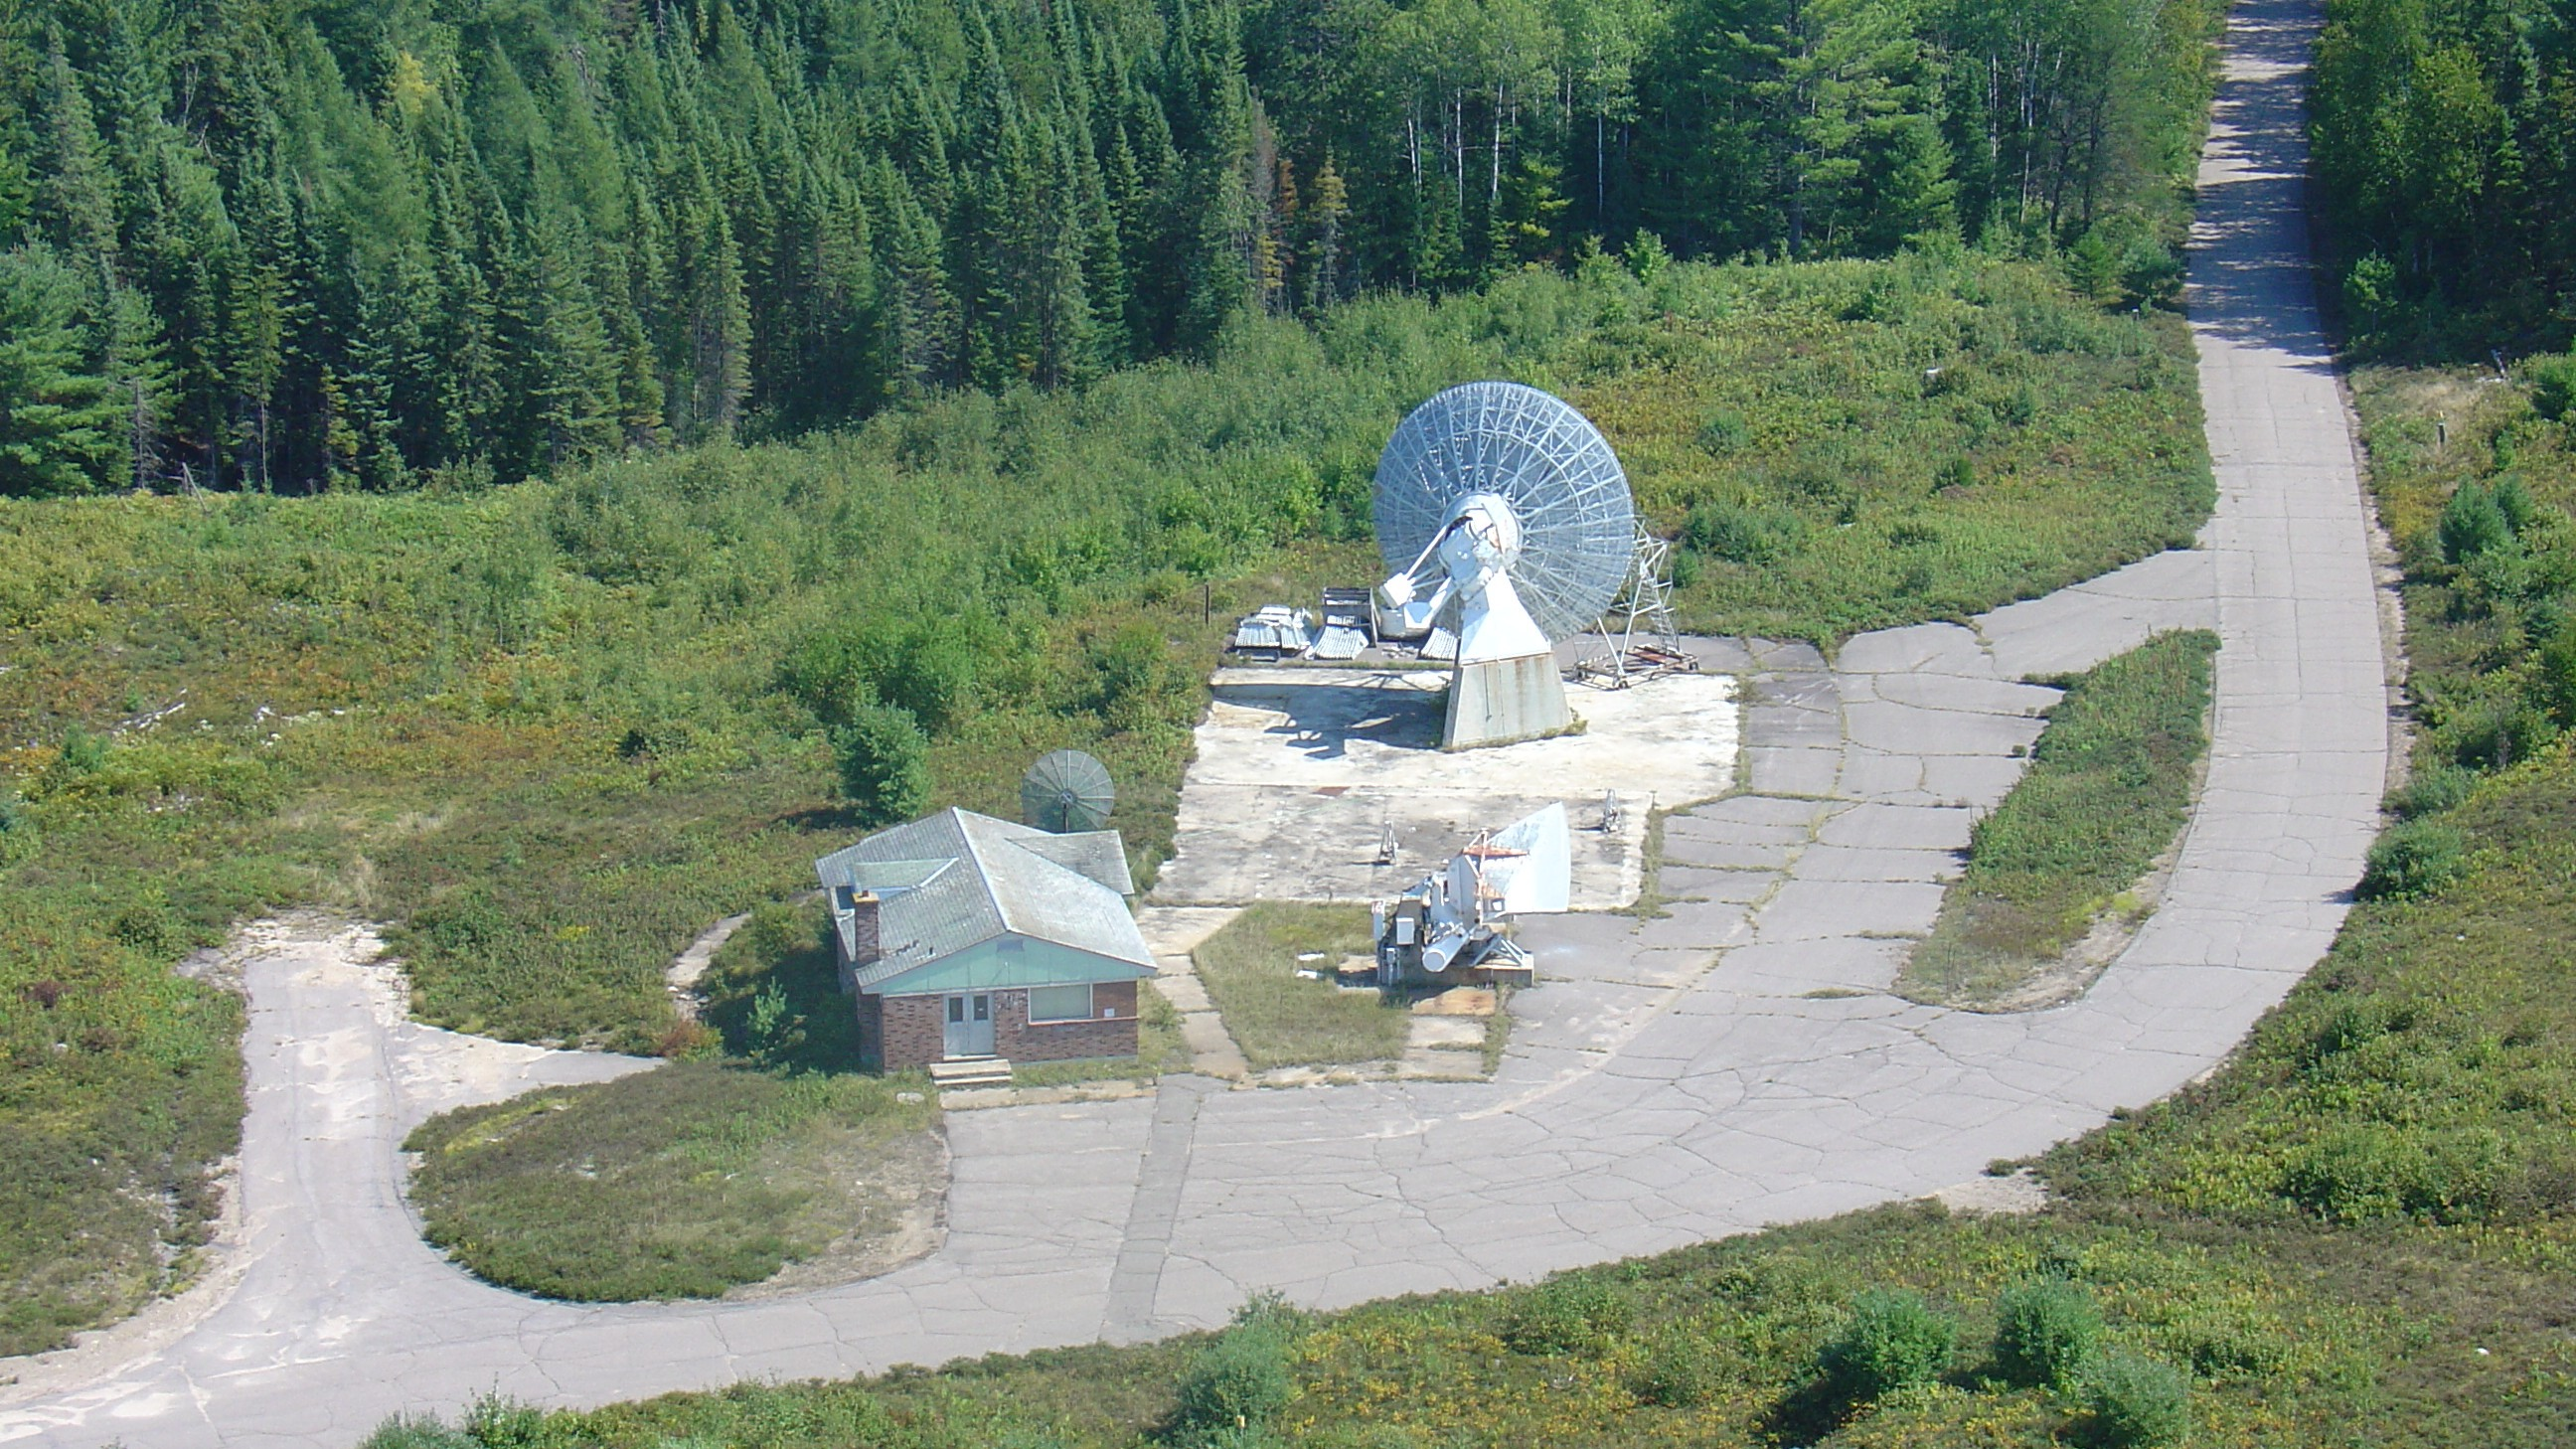 Resurrecting Canada's Long-Lost 46-Meter Telescope In the Middle of the Woods